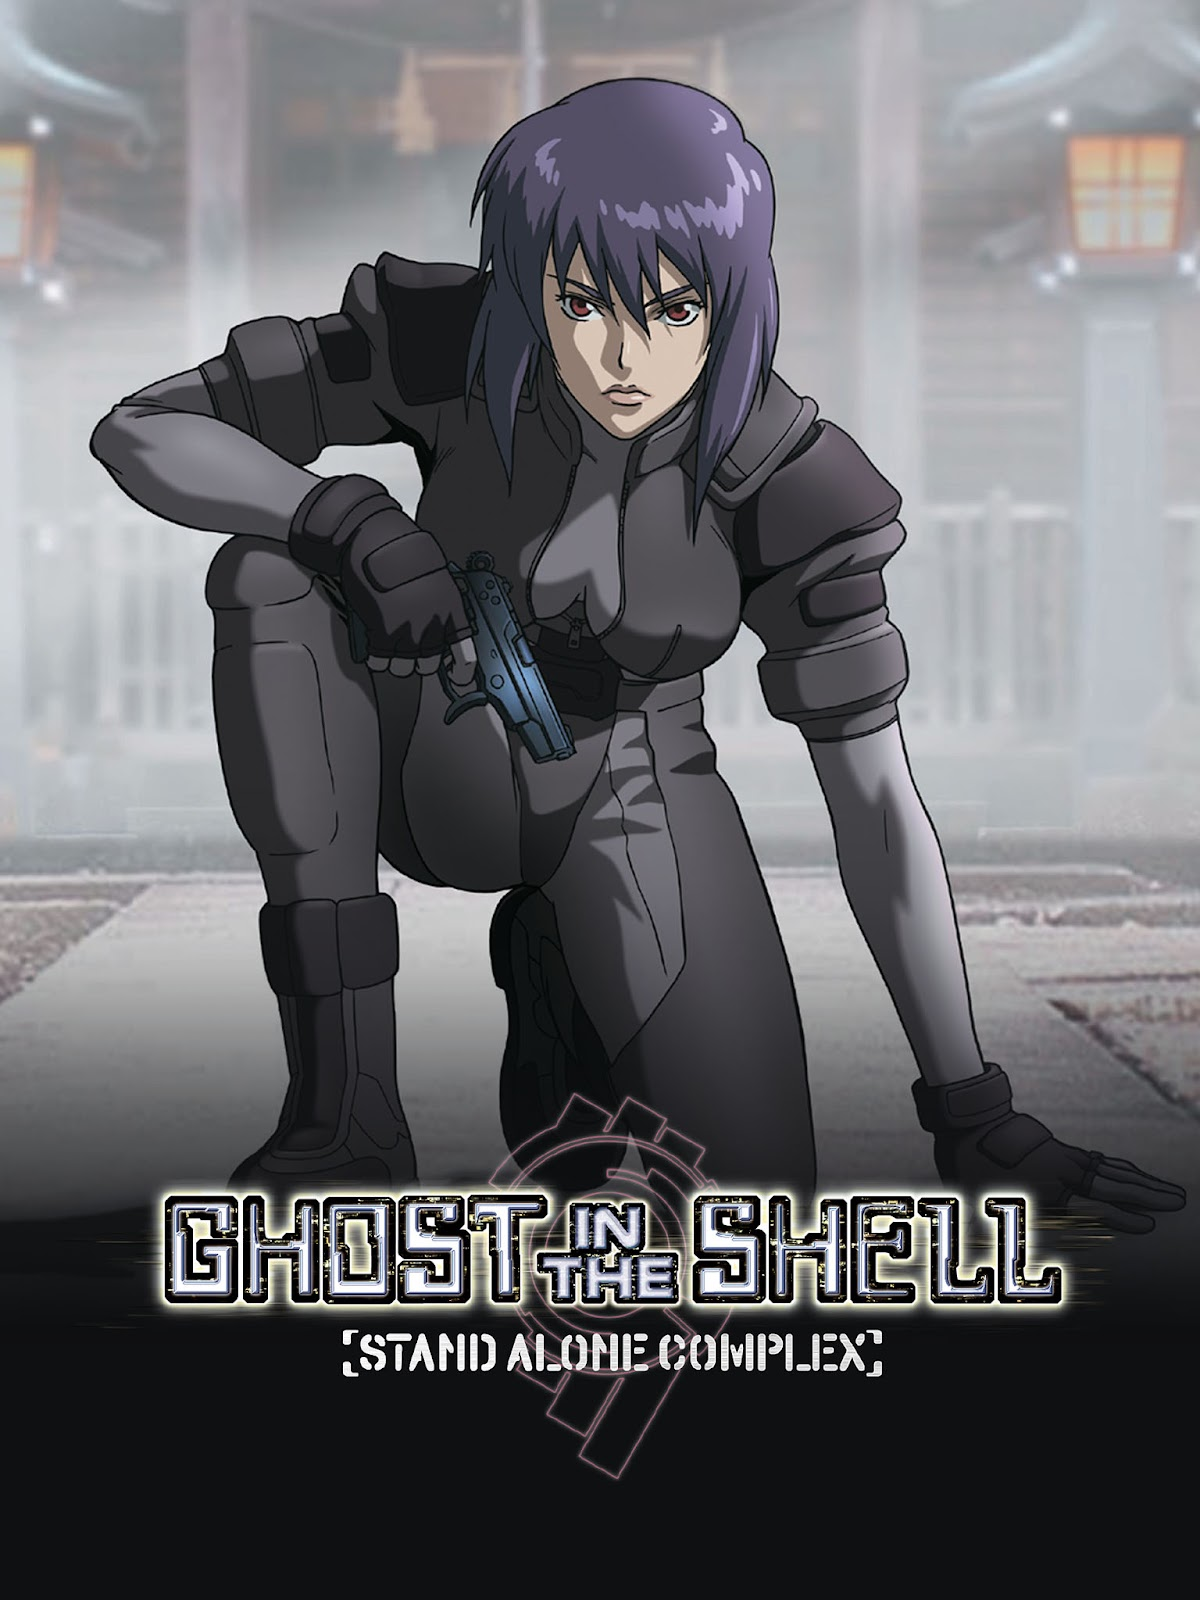 Top 10 Cyberpunk Anime Masterpieces That you Need to Watch - Ghost in The Shell